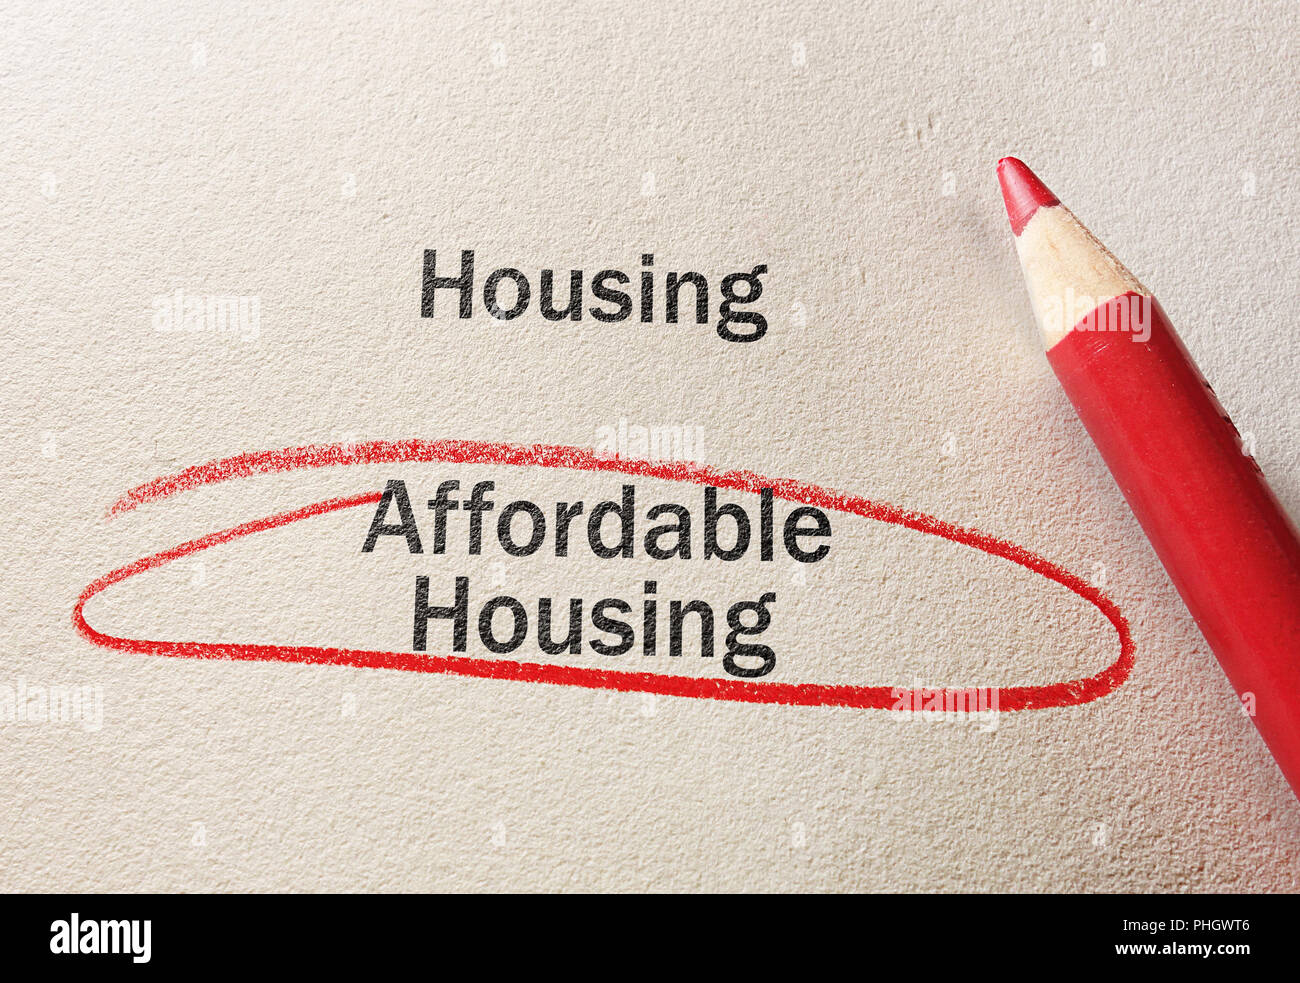 Affordable Housing concept - Stock Image